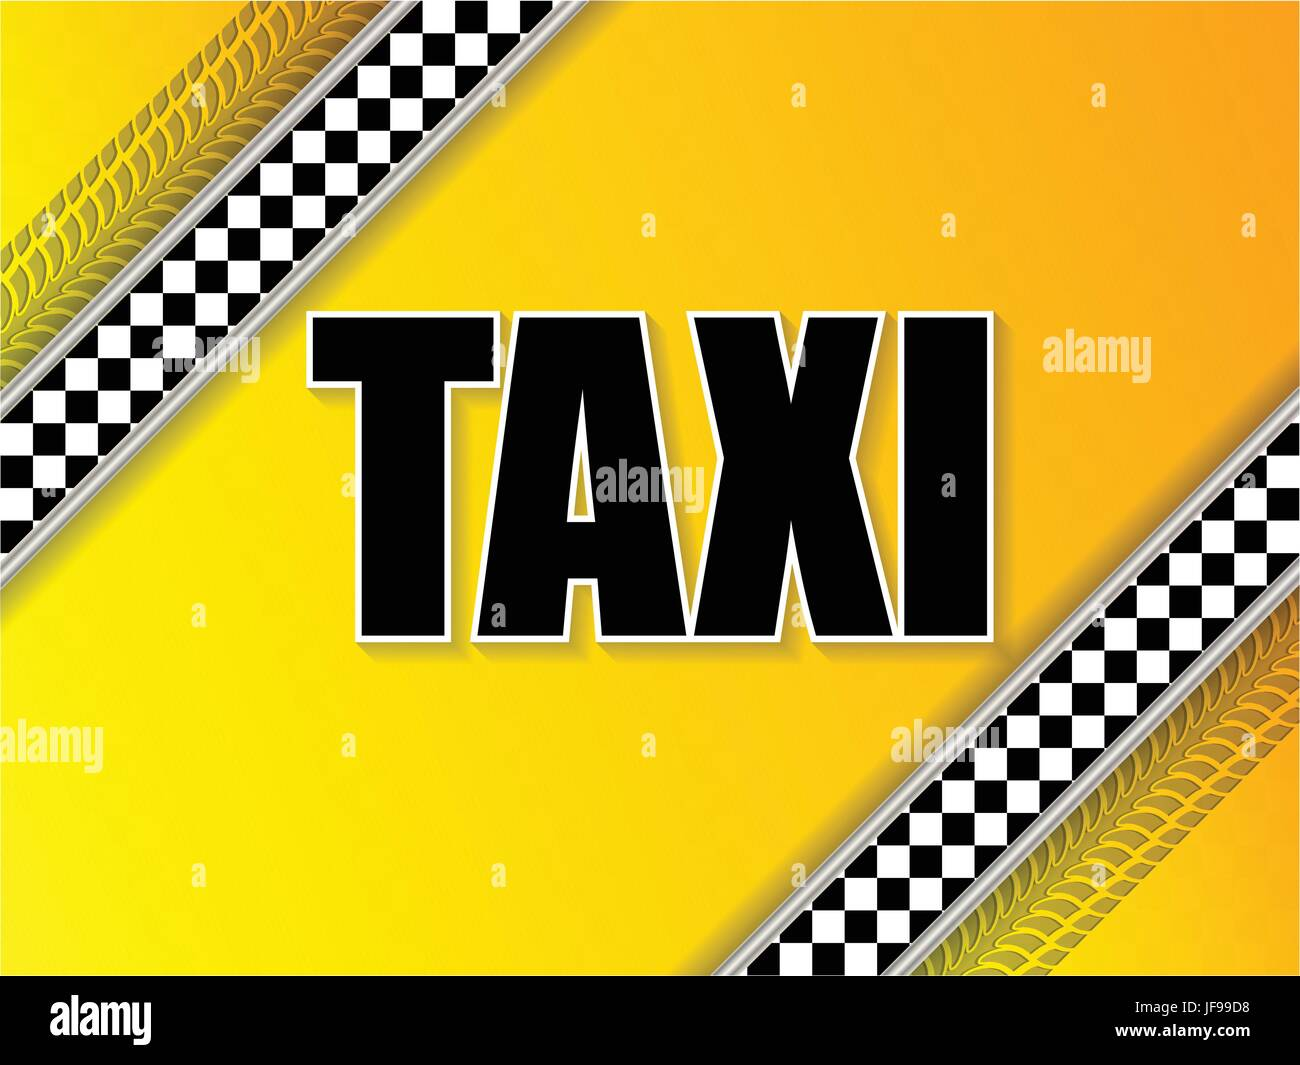 Taxi company advertising with tire tread and metallic elements - Stock Vector